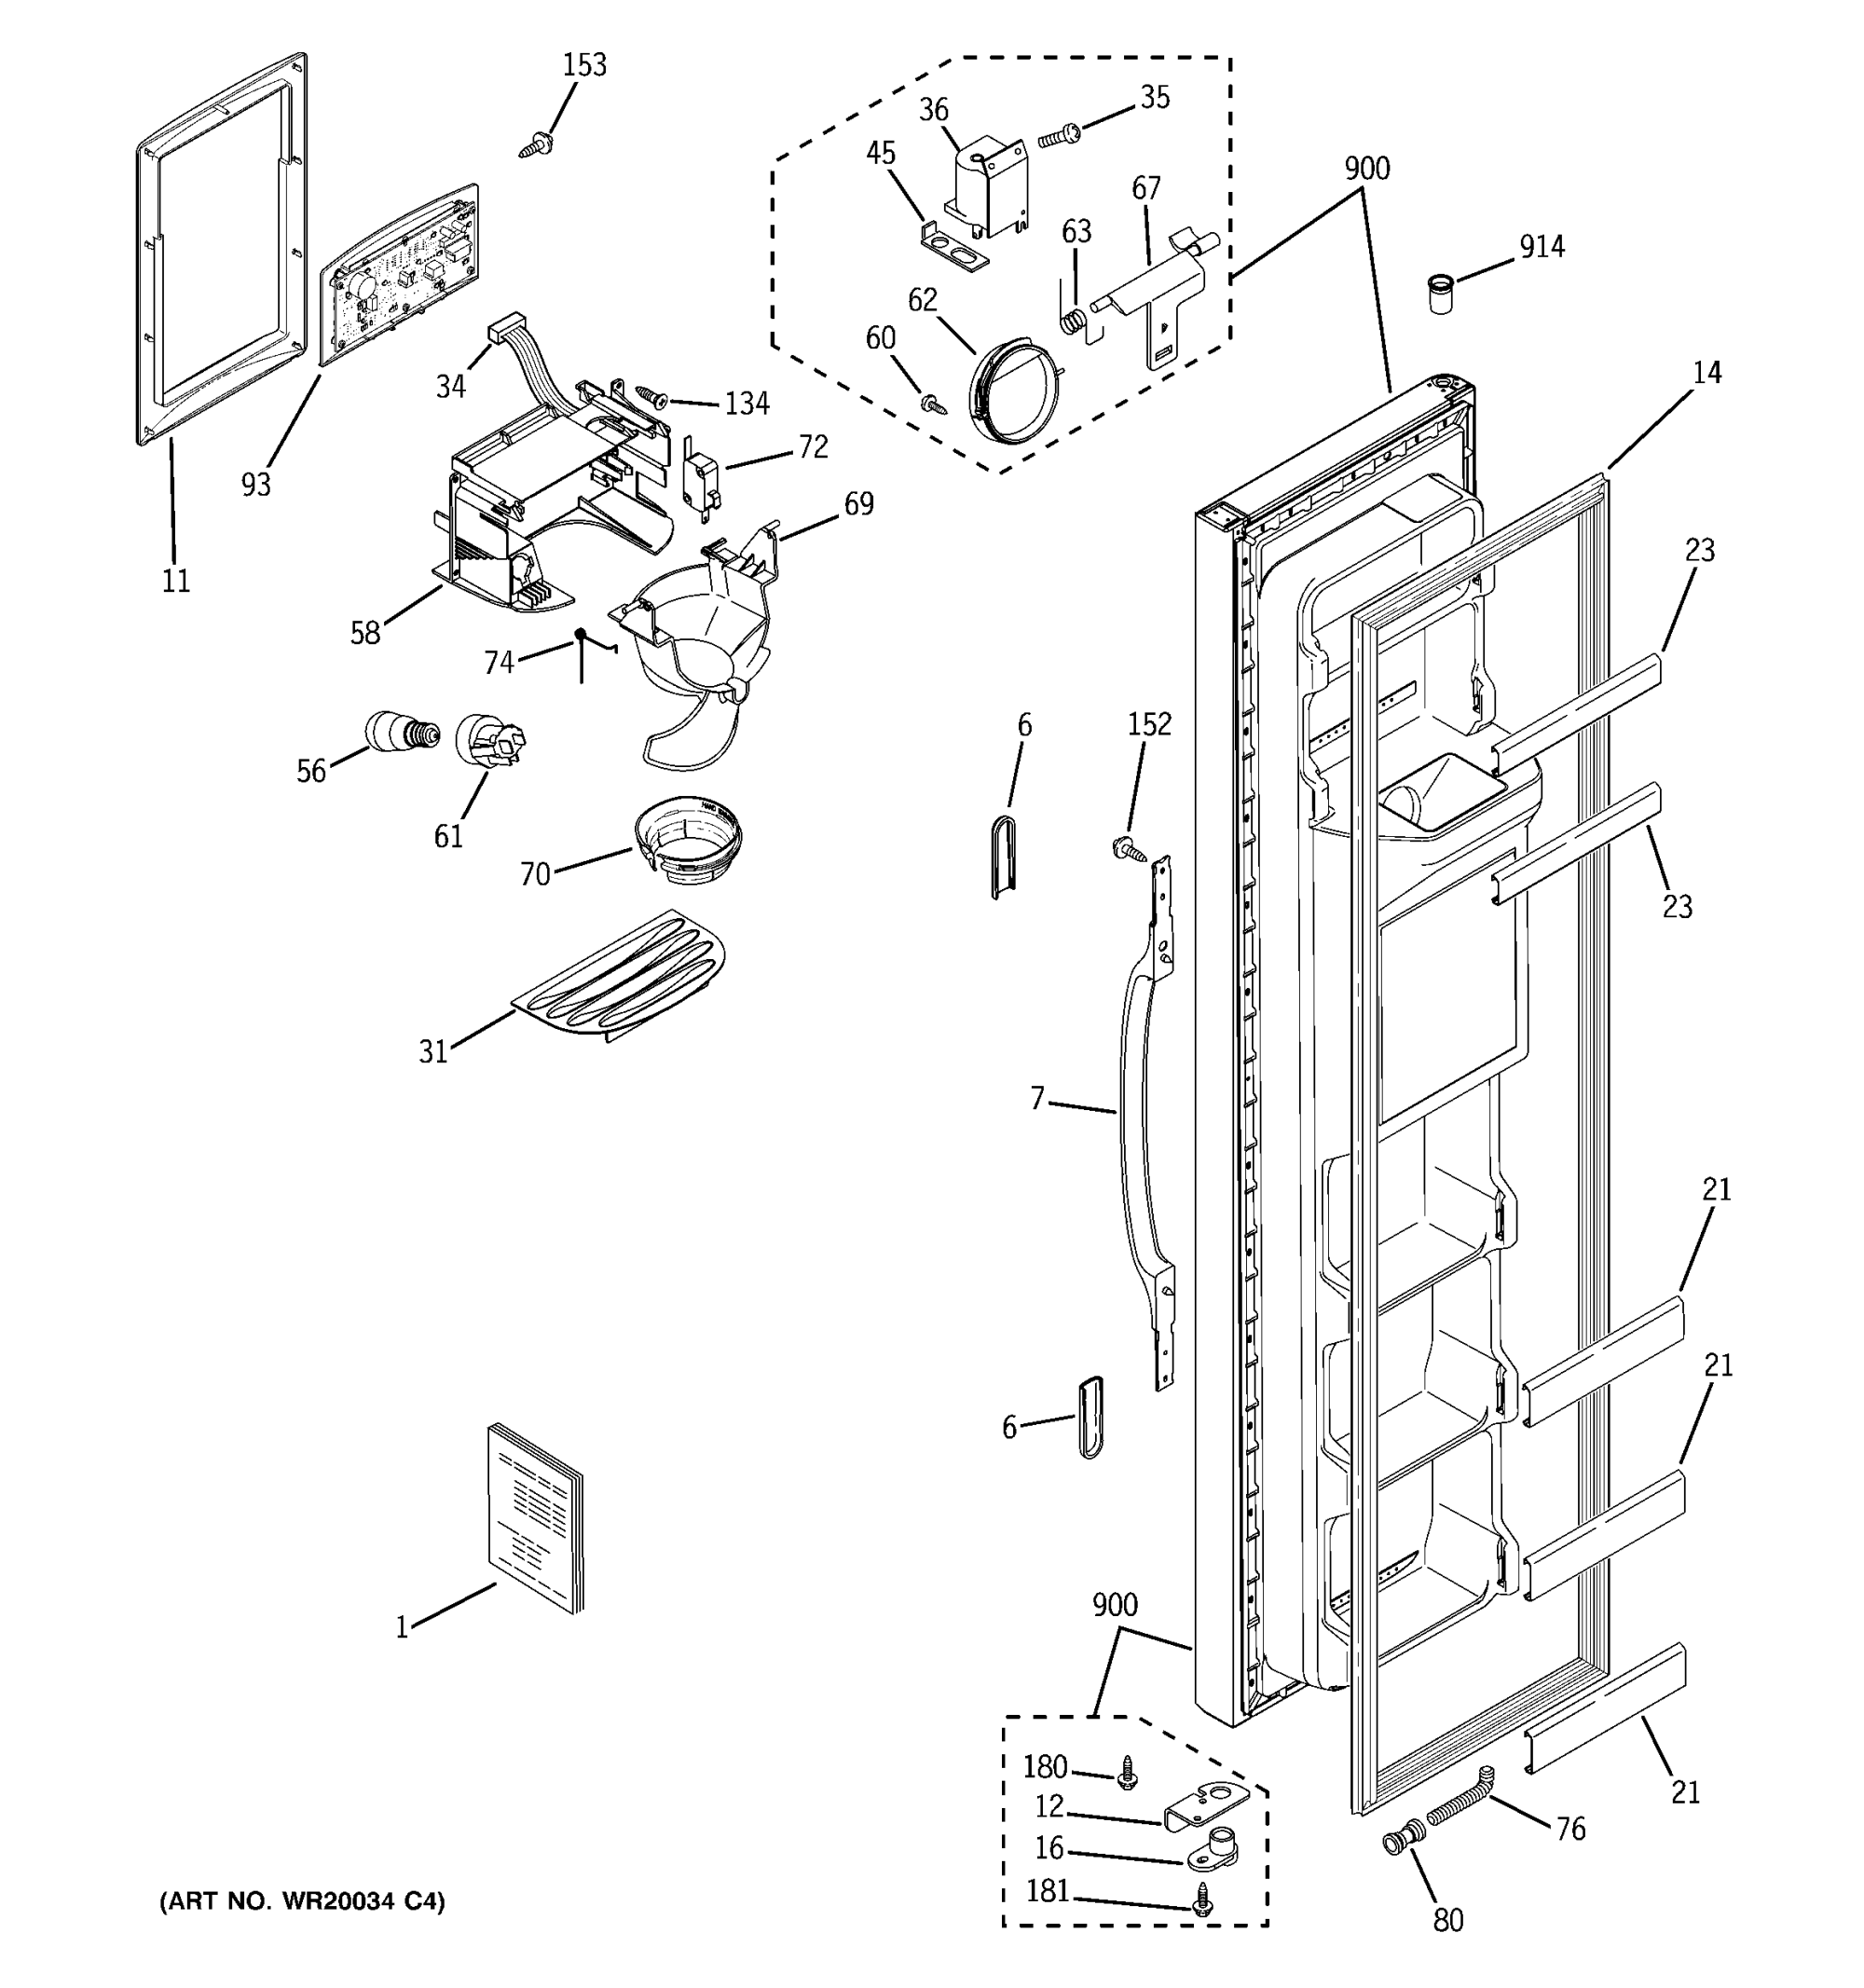 hight resolution of ge hotpoint refrigerator replacement parts